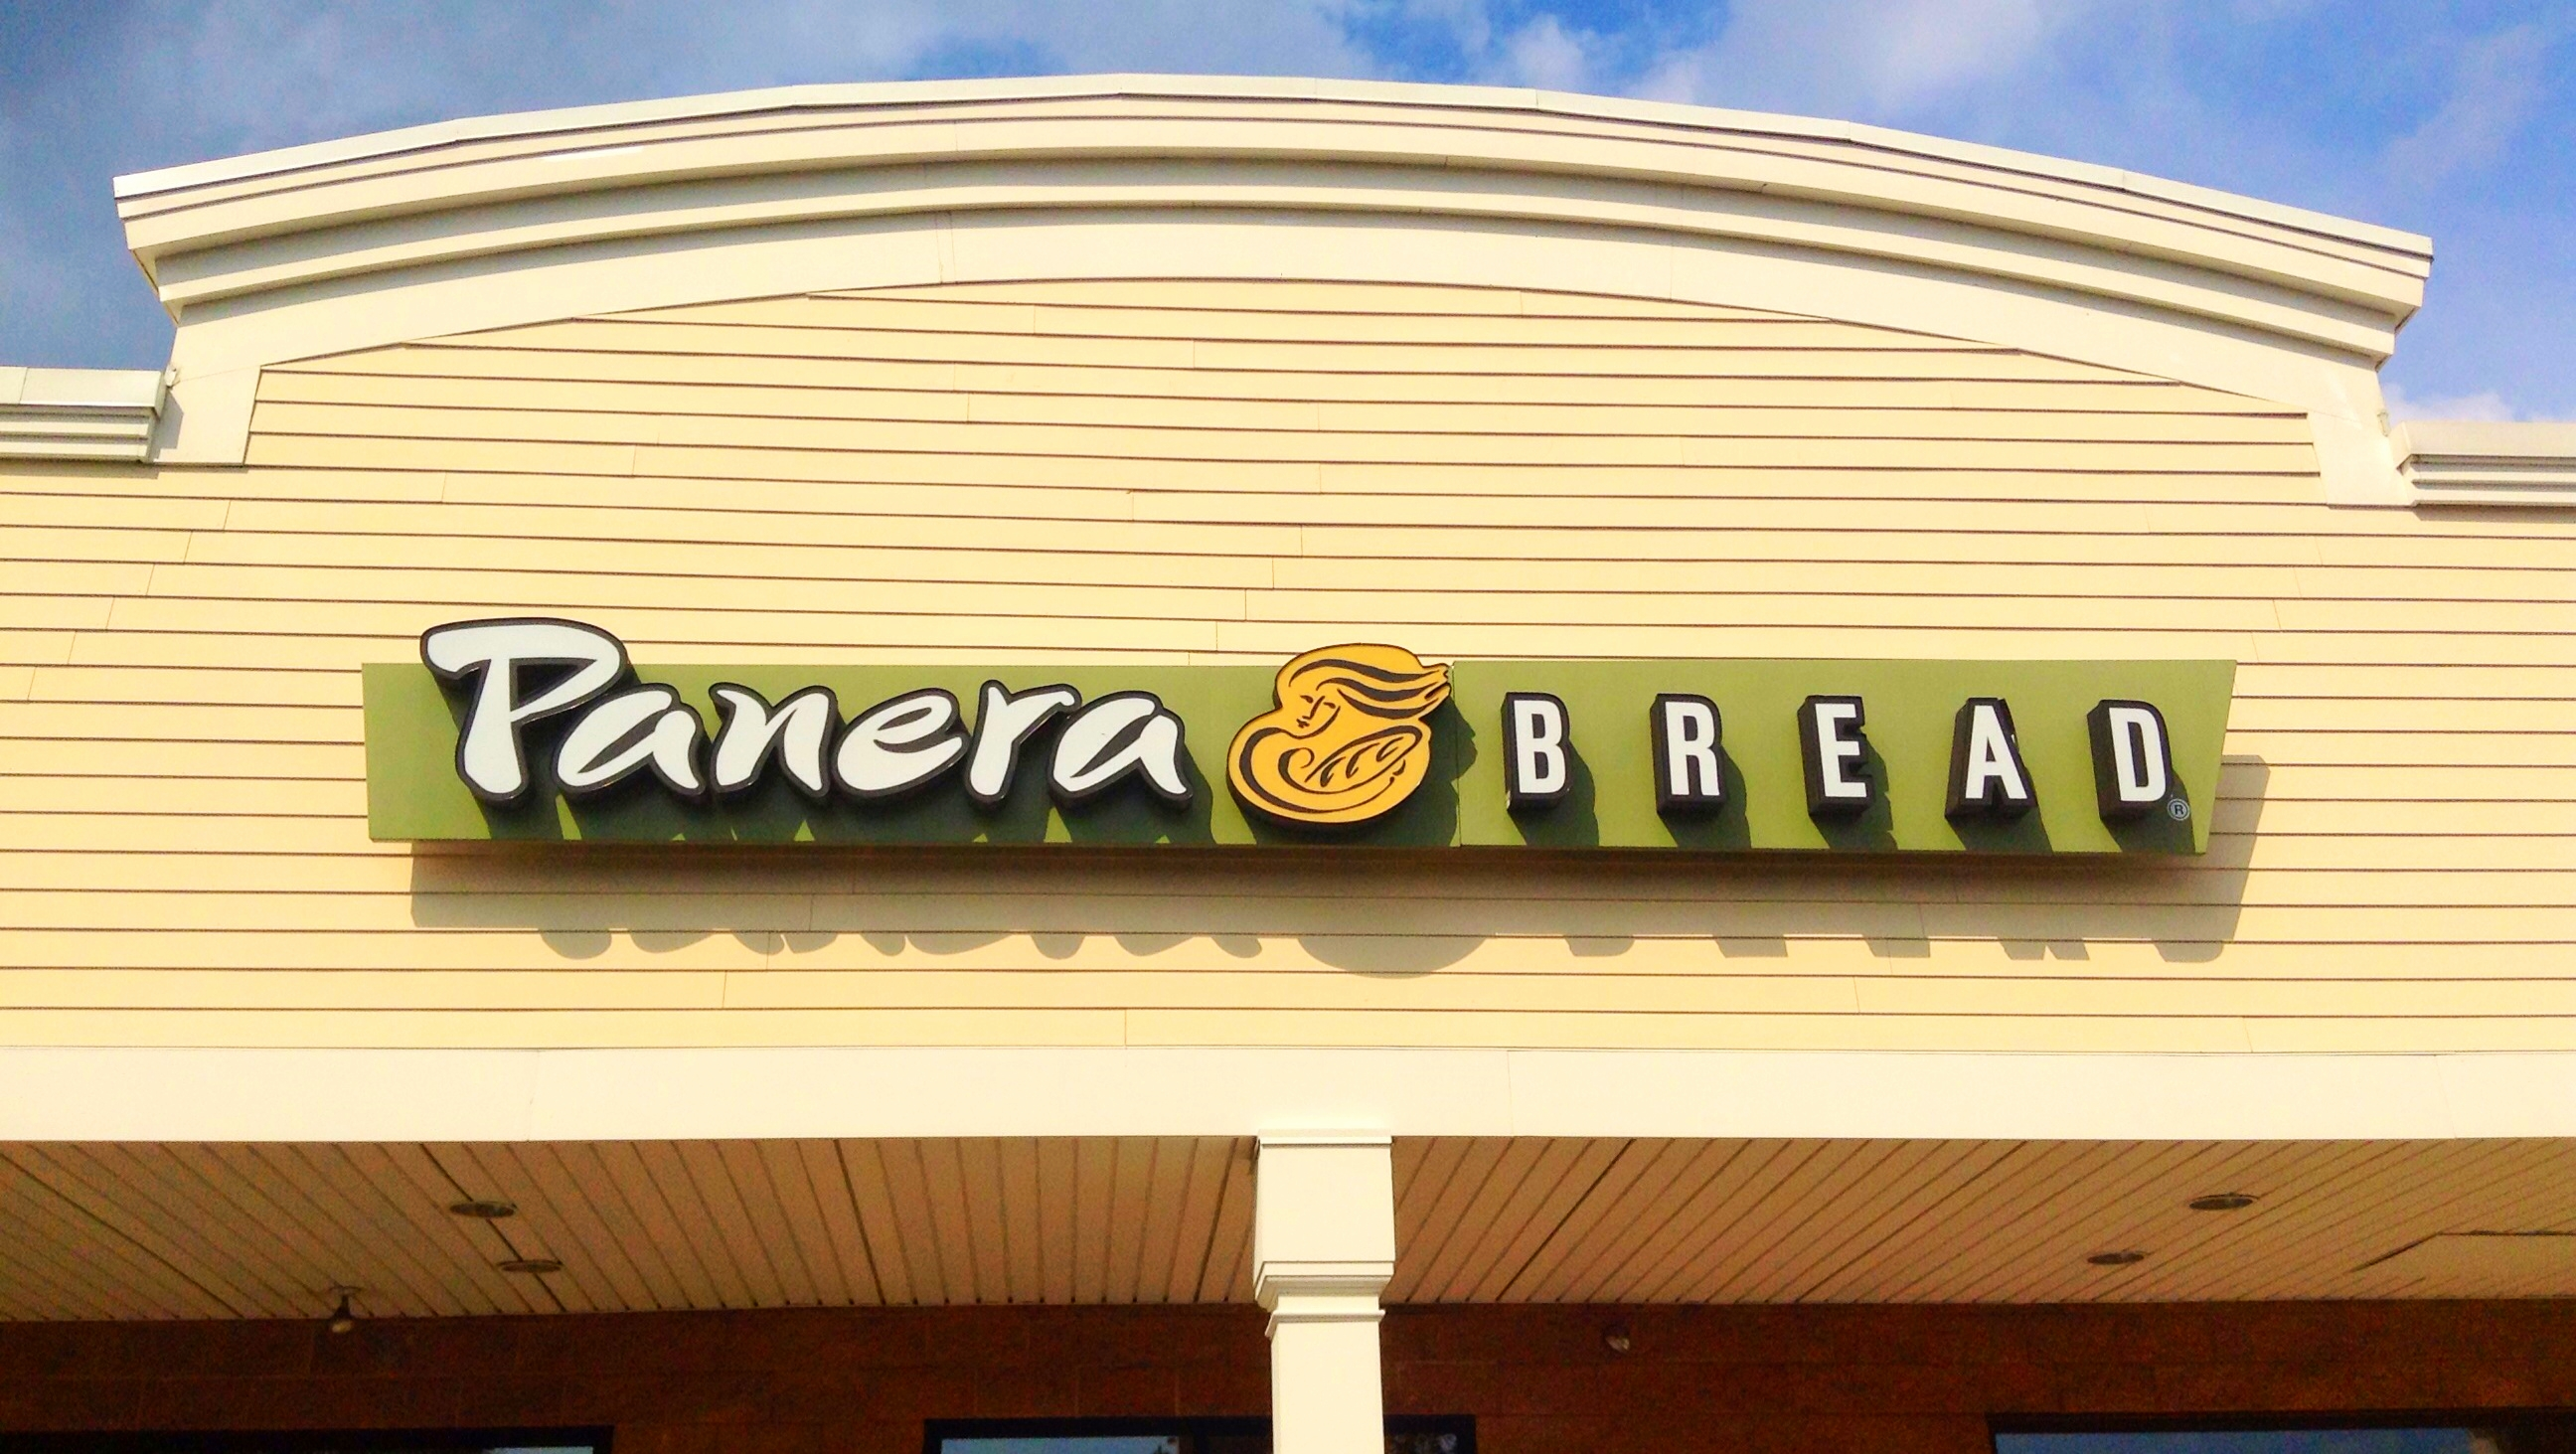 supply chain of panera bread Get rewarded for your catering purchases, too earn $20 in mypanera rewards for every $500 you spend on catering.